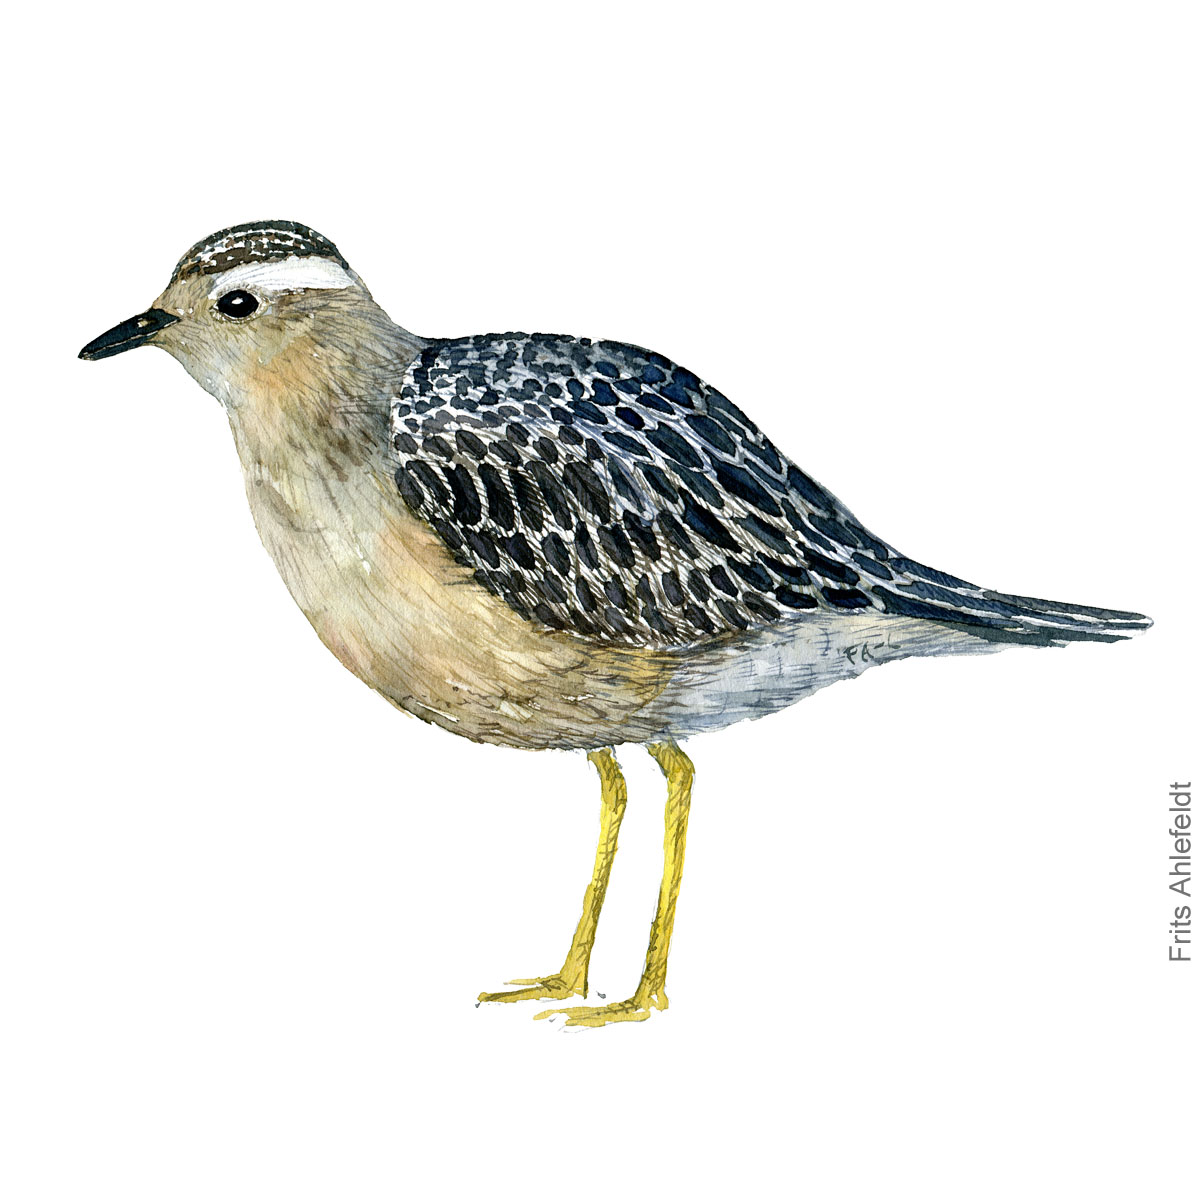 Eurasian dotterel illustration Watercolor by Frits Ahlefeldt. Pomeransfugl akvarel